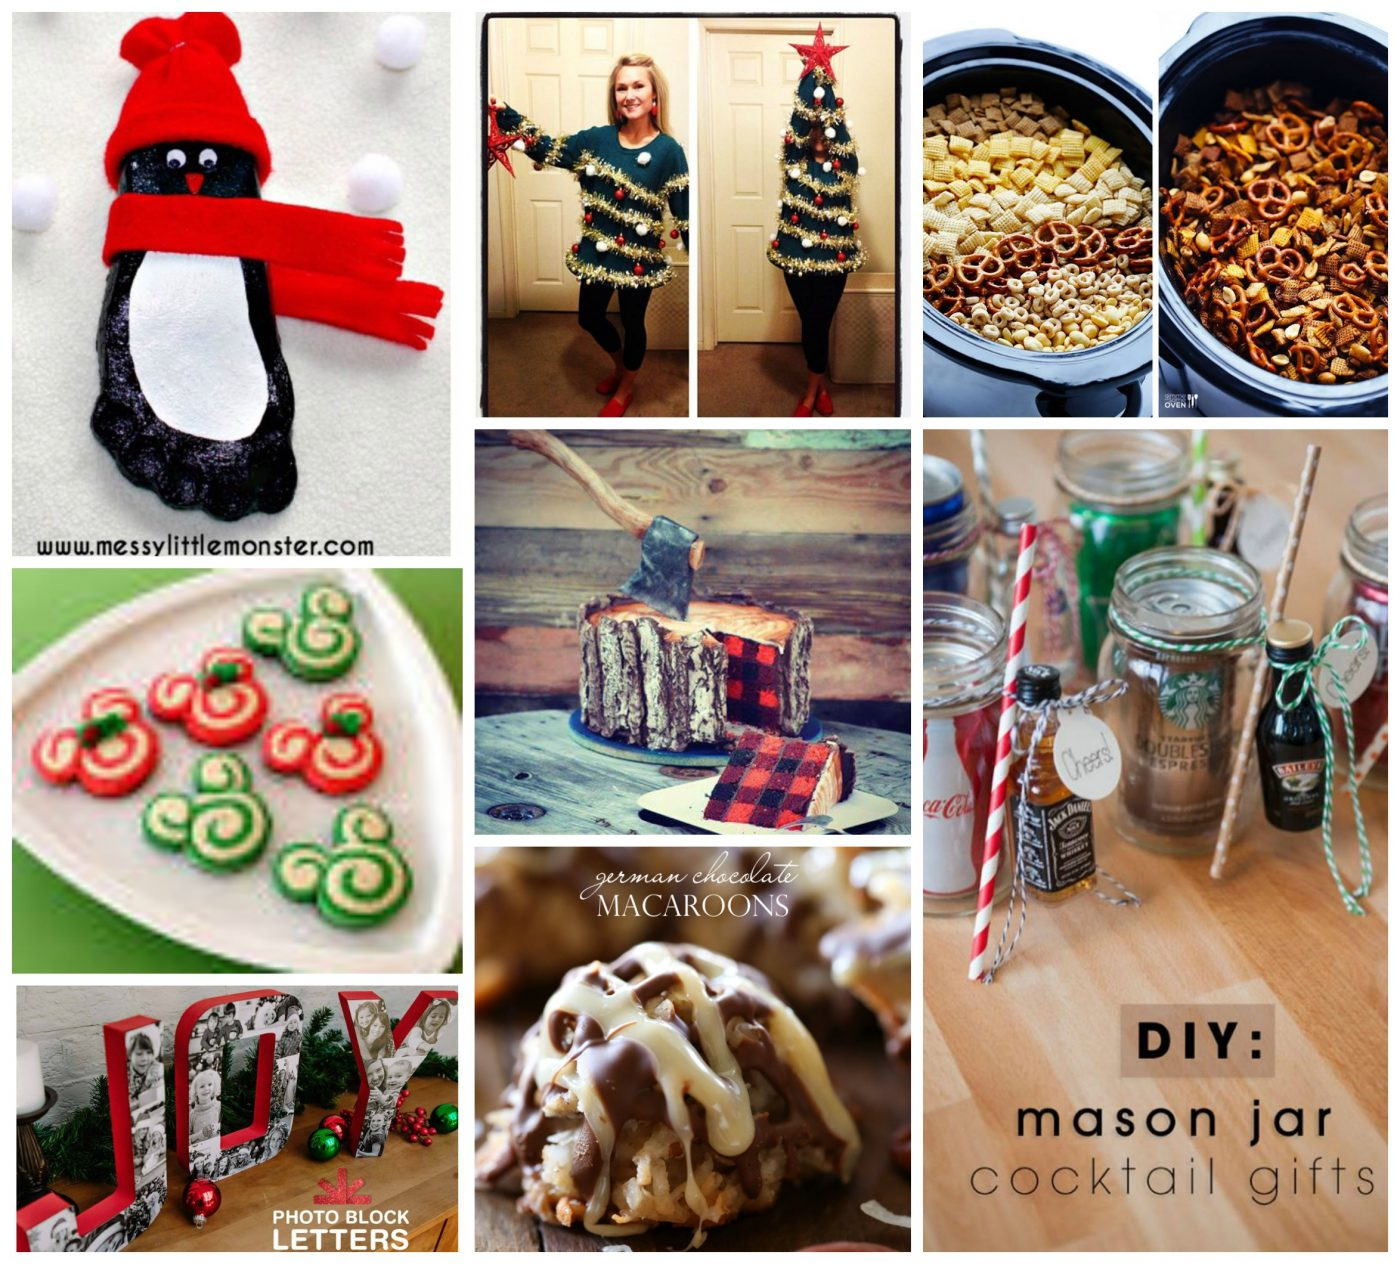 fun finds friday with christmas treats crafts fantastic ideas kitchen fun with my 3 sons